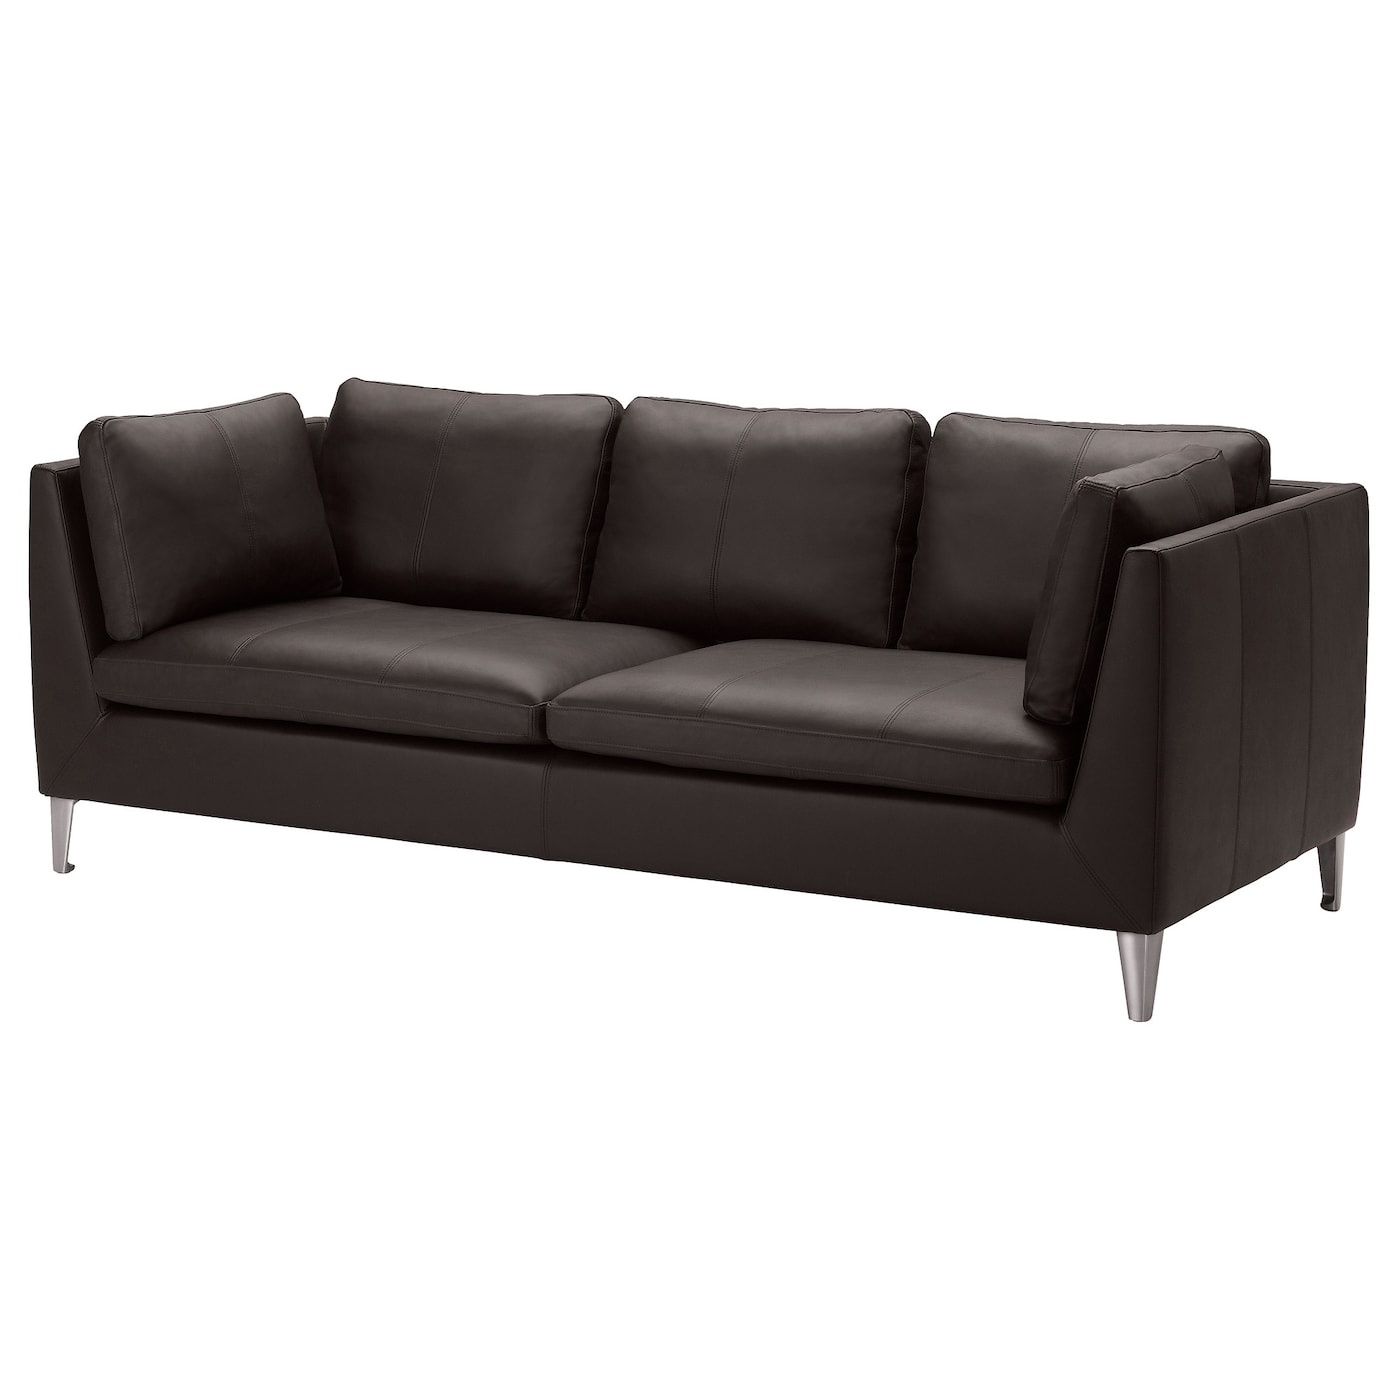 stockholm three seat sofa seglora dark brown ikea. Black Bedroom Furniture Sets. Home Design Ideas